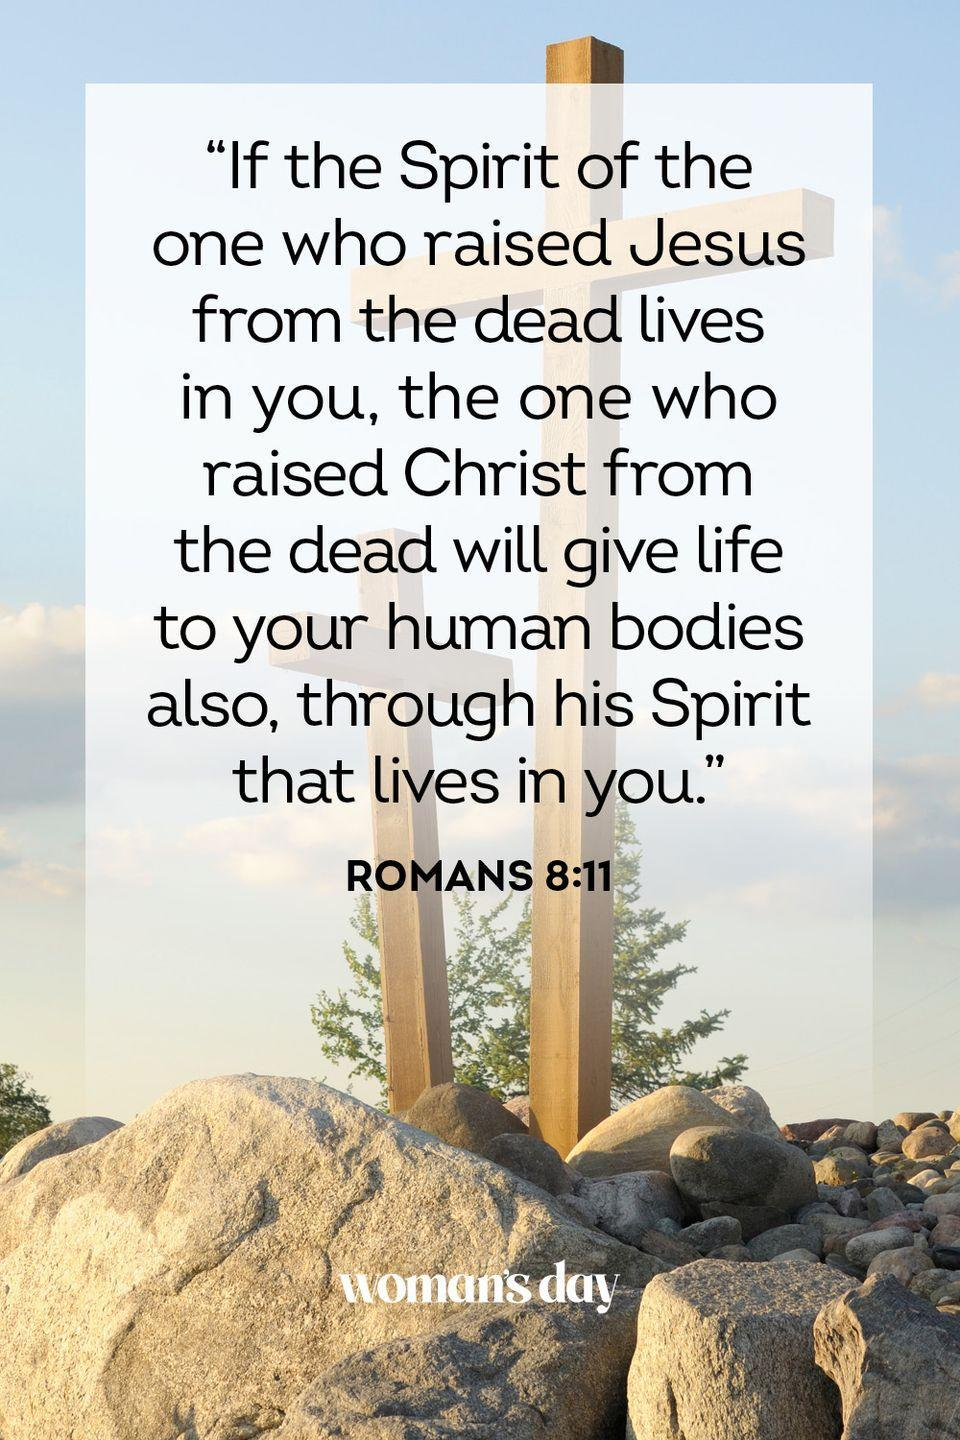 "<p>""If the Spirit of the one who raised Jesus from the dead lives in you, the one who raised Christ from the dead will give life to your human bodies also, through his Spirit that lives in you."" — Romans 8:11</p>"